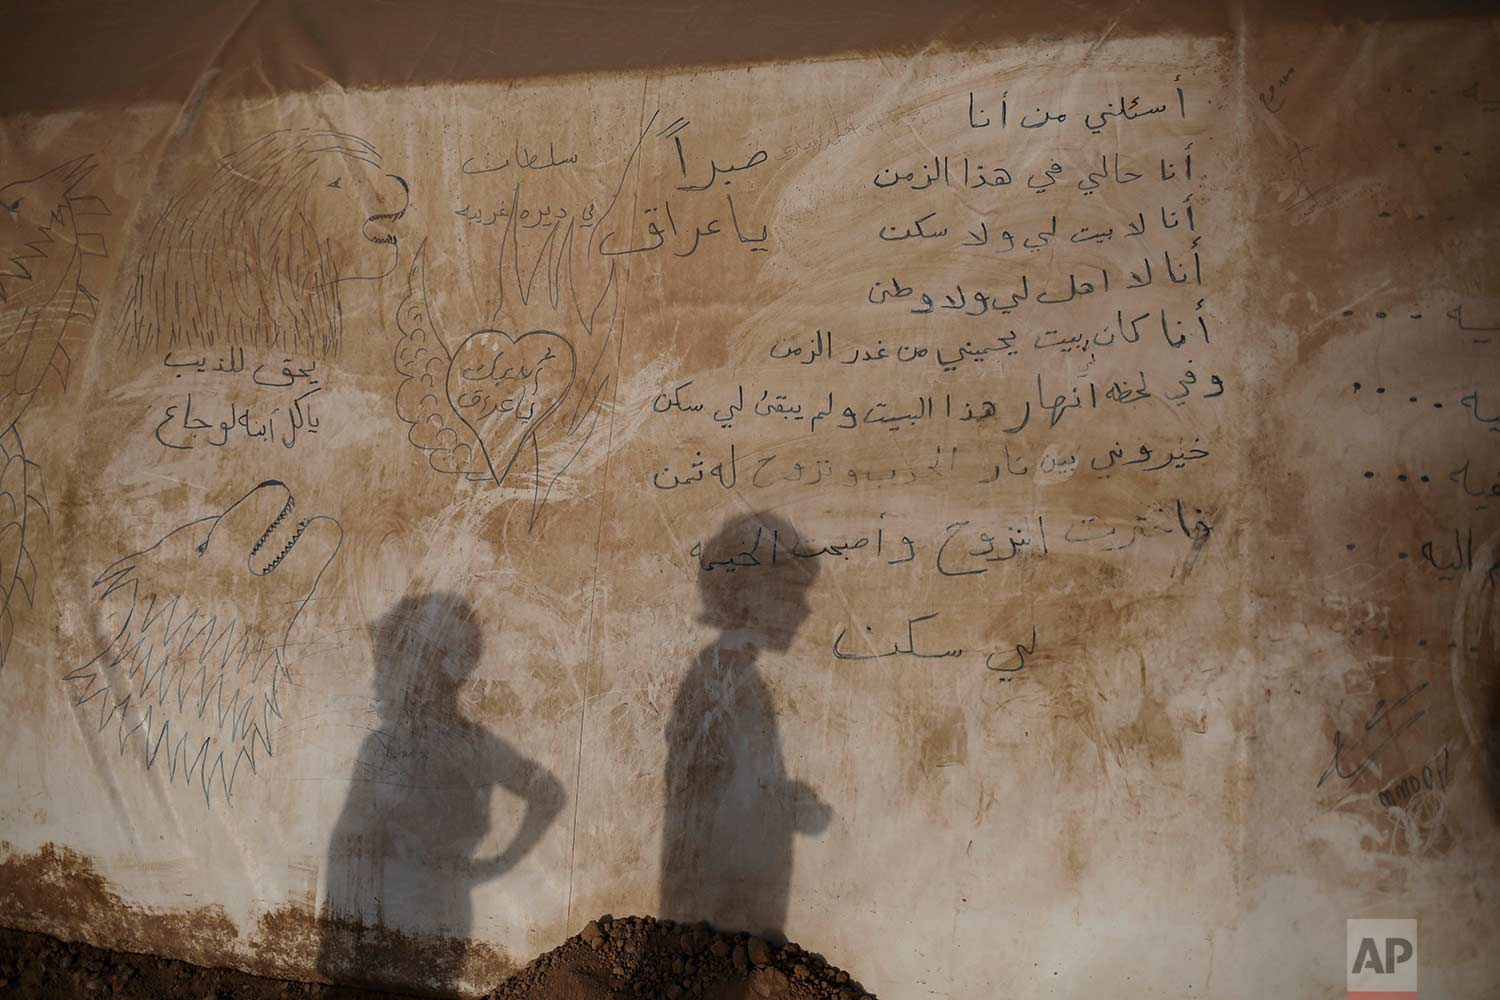 "In this Sunday, July 25, 2017 photo, the shadows of two boys are seen on the side of a tent inside the Khazer camp for displaced people in Northern Iraq. A poem is written in the side of the tent: ""Ask me who I am, I am talking for myself. I am the one who doesn't have a house or a home. I'm the one without relatives and a country. I used to have a house protecting me from the treason of time. In a moment this house collapsed and there's something left for me. I had to choose between the flames of war and the consequences of displacement. I chose displacement and the tent became my home."" (AP Photo/Bram Janssen)"